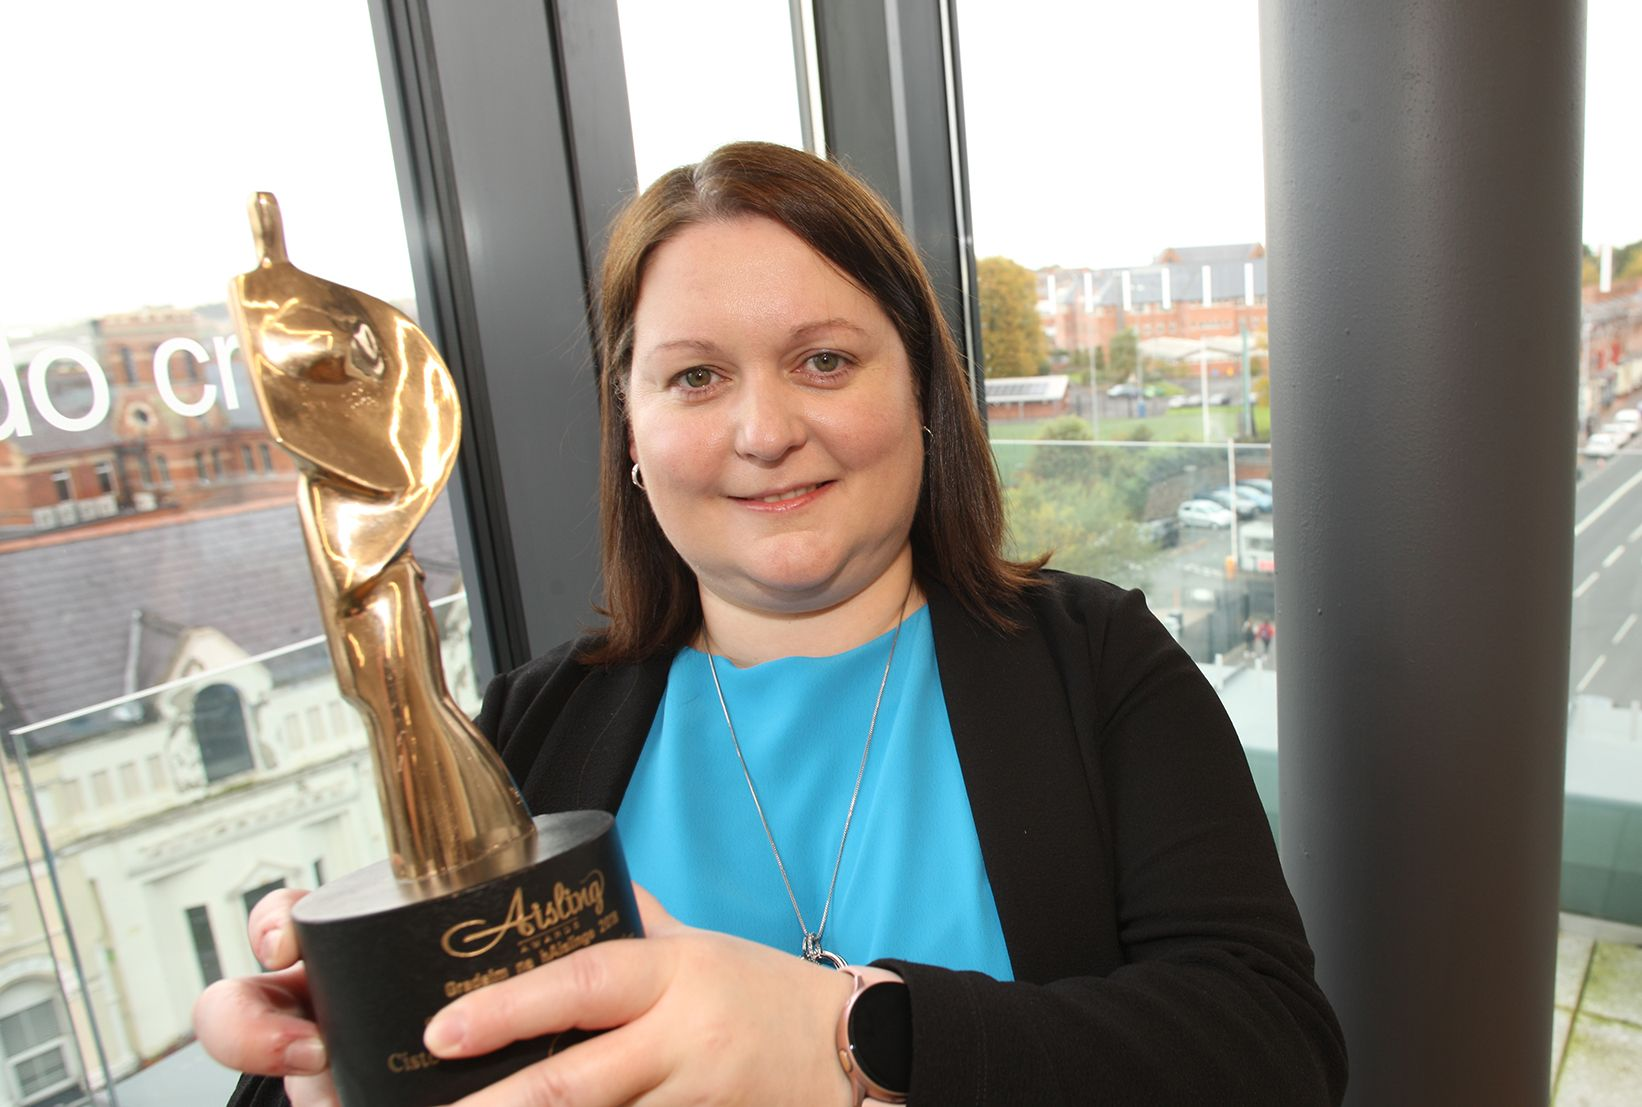 IRISH LANGUAGE CHAMPIONS IN AISLING SPOTLIGHT: Edel Ní Chorráin from Foras na Gaeilge which is sponsoring the 2021 Aisling gala.